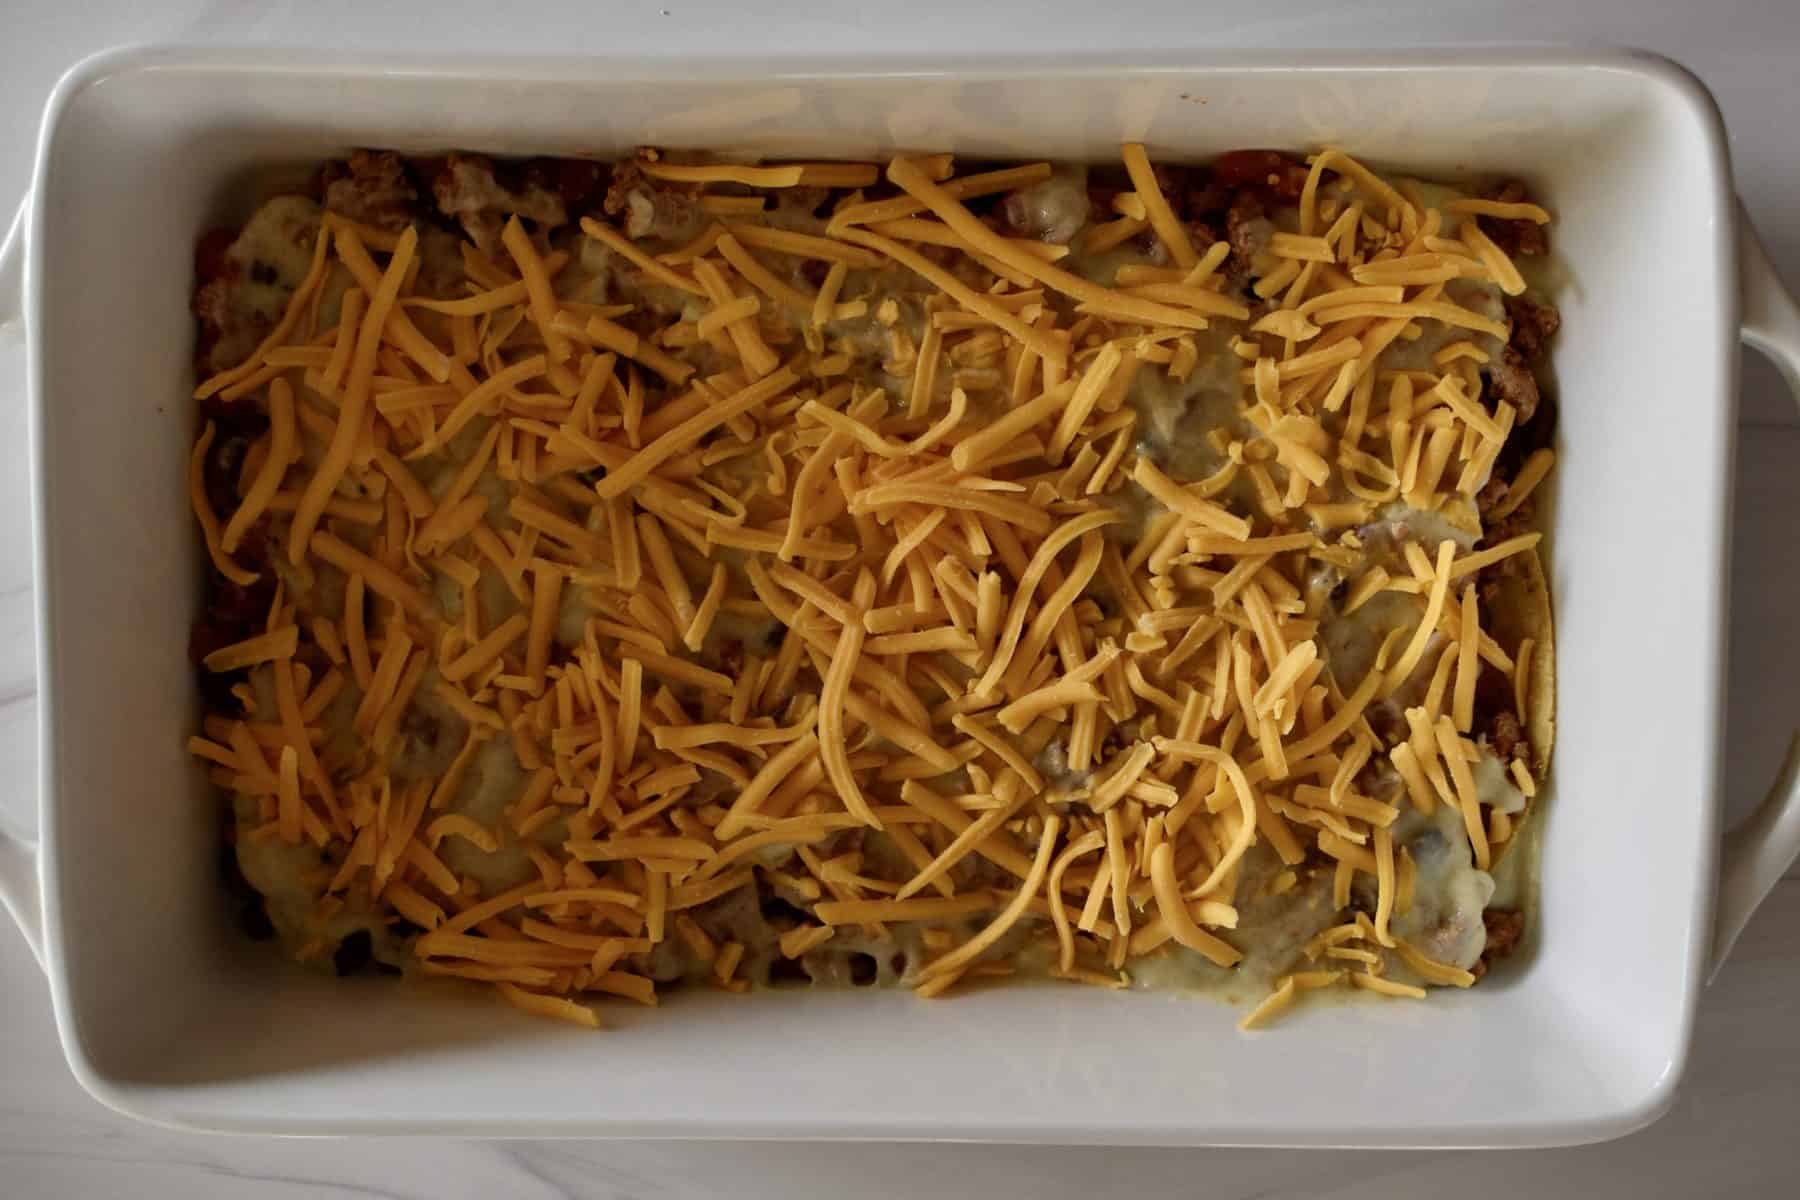 shredded cheddar on top of the green enchilada sauce layer.